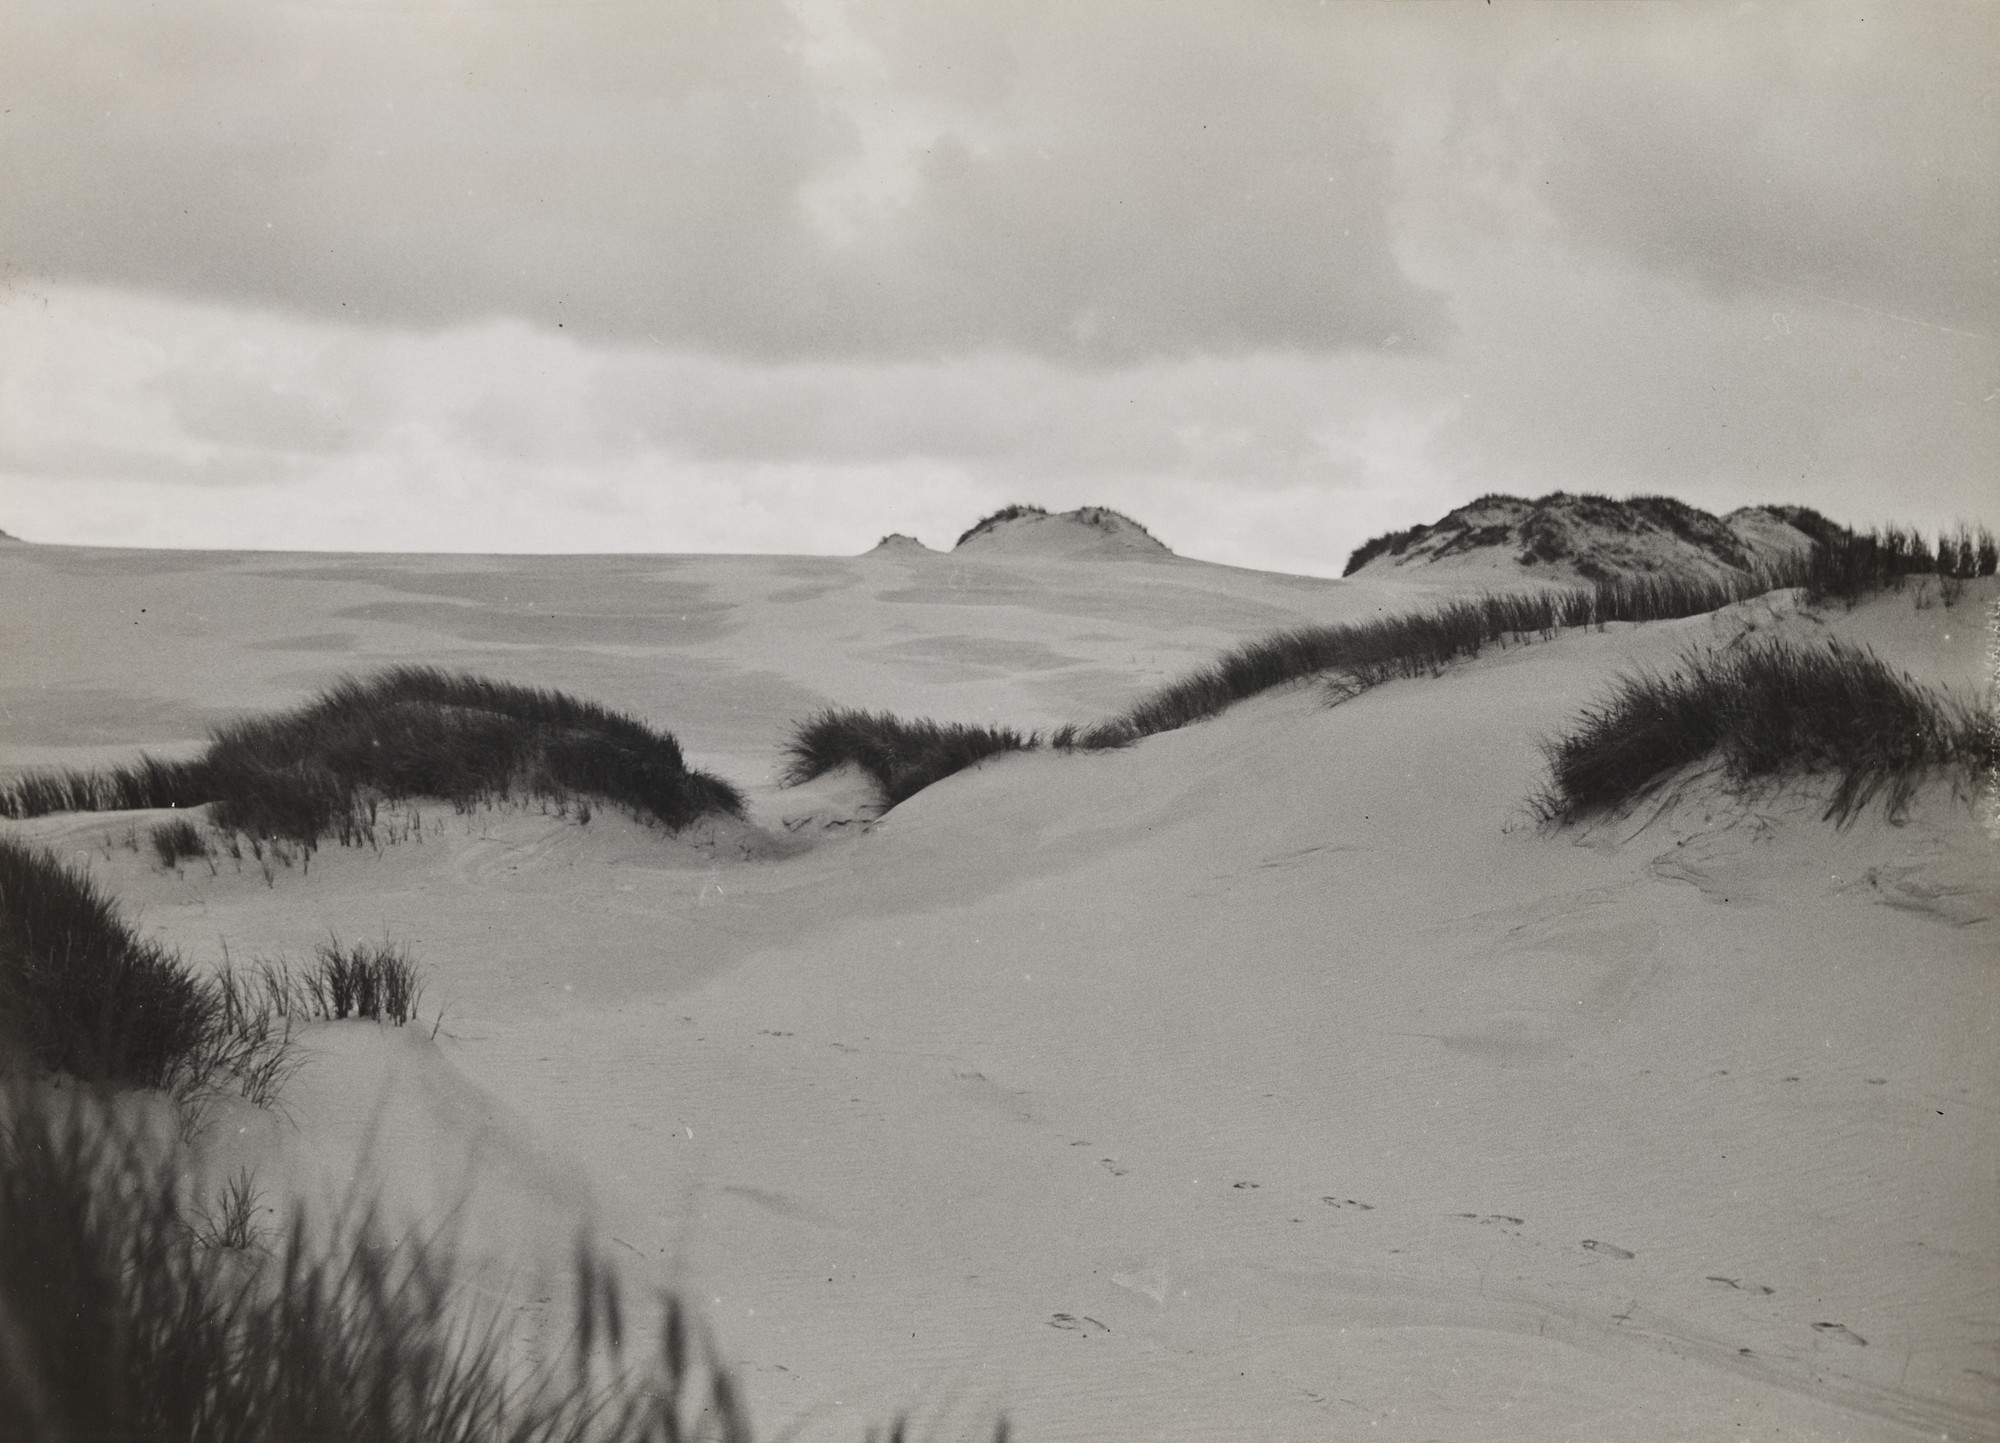 Raoul Hausmann. Dune in Salesk. September 1932